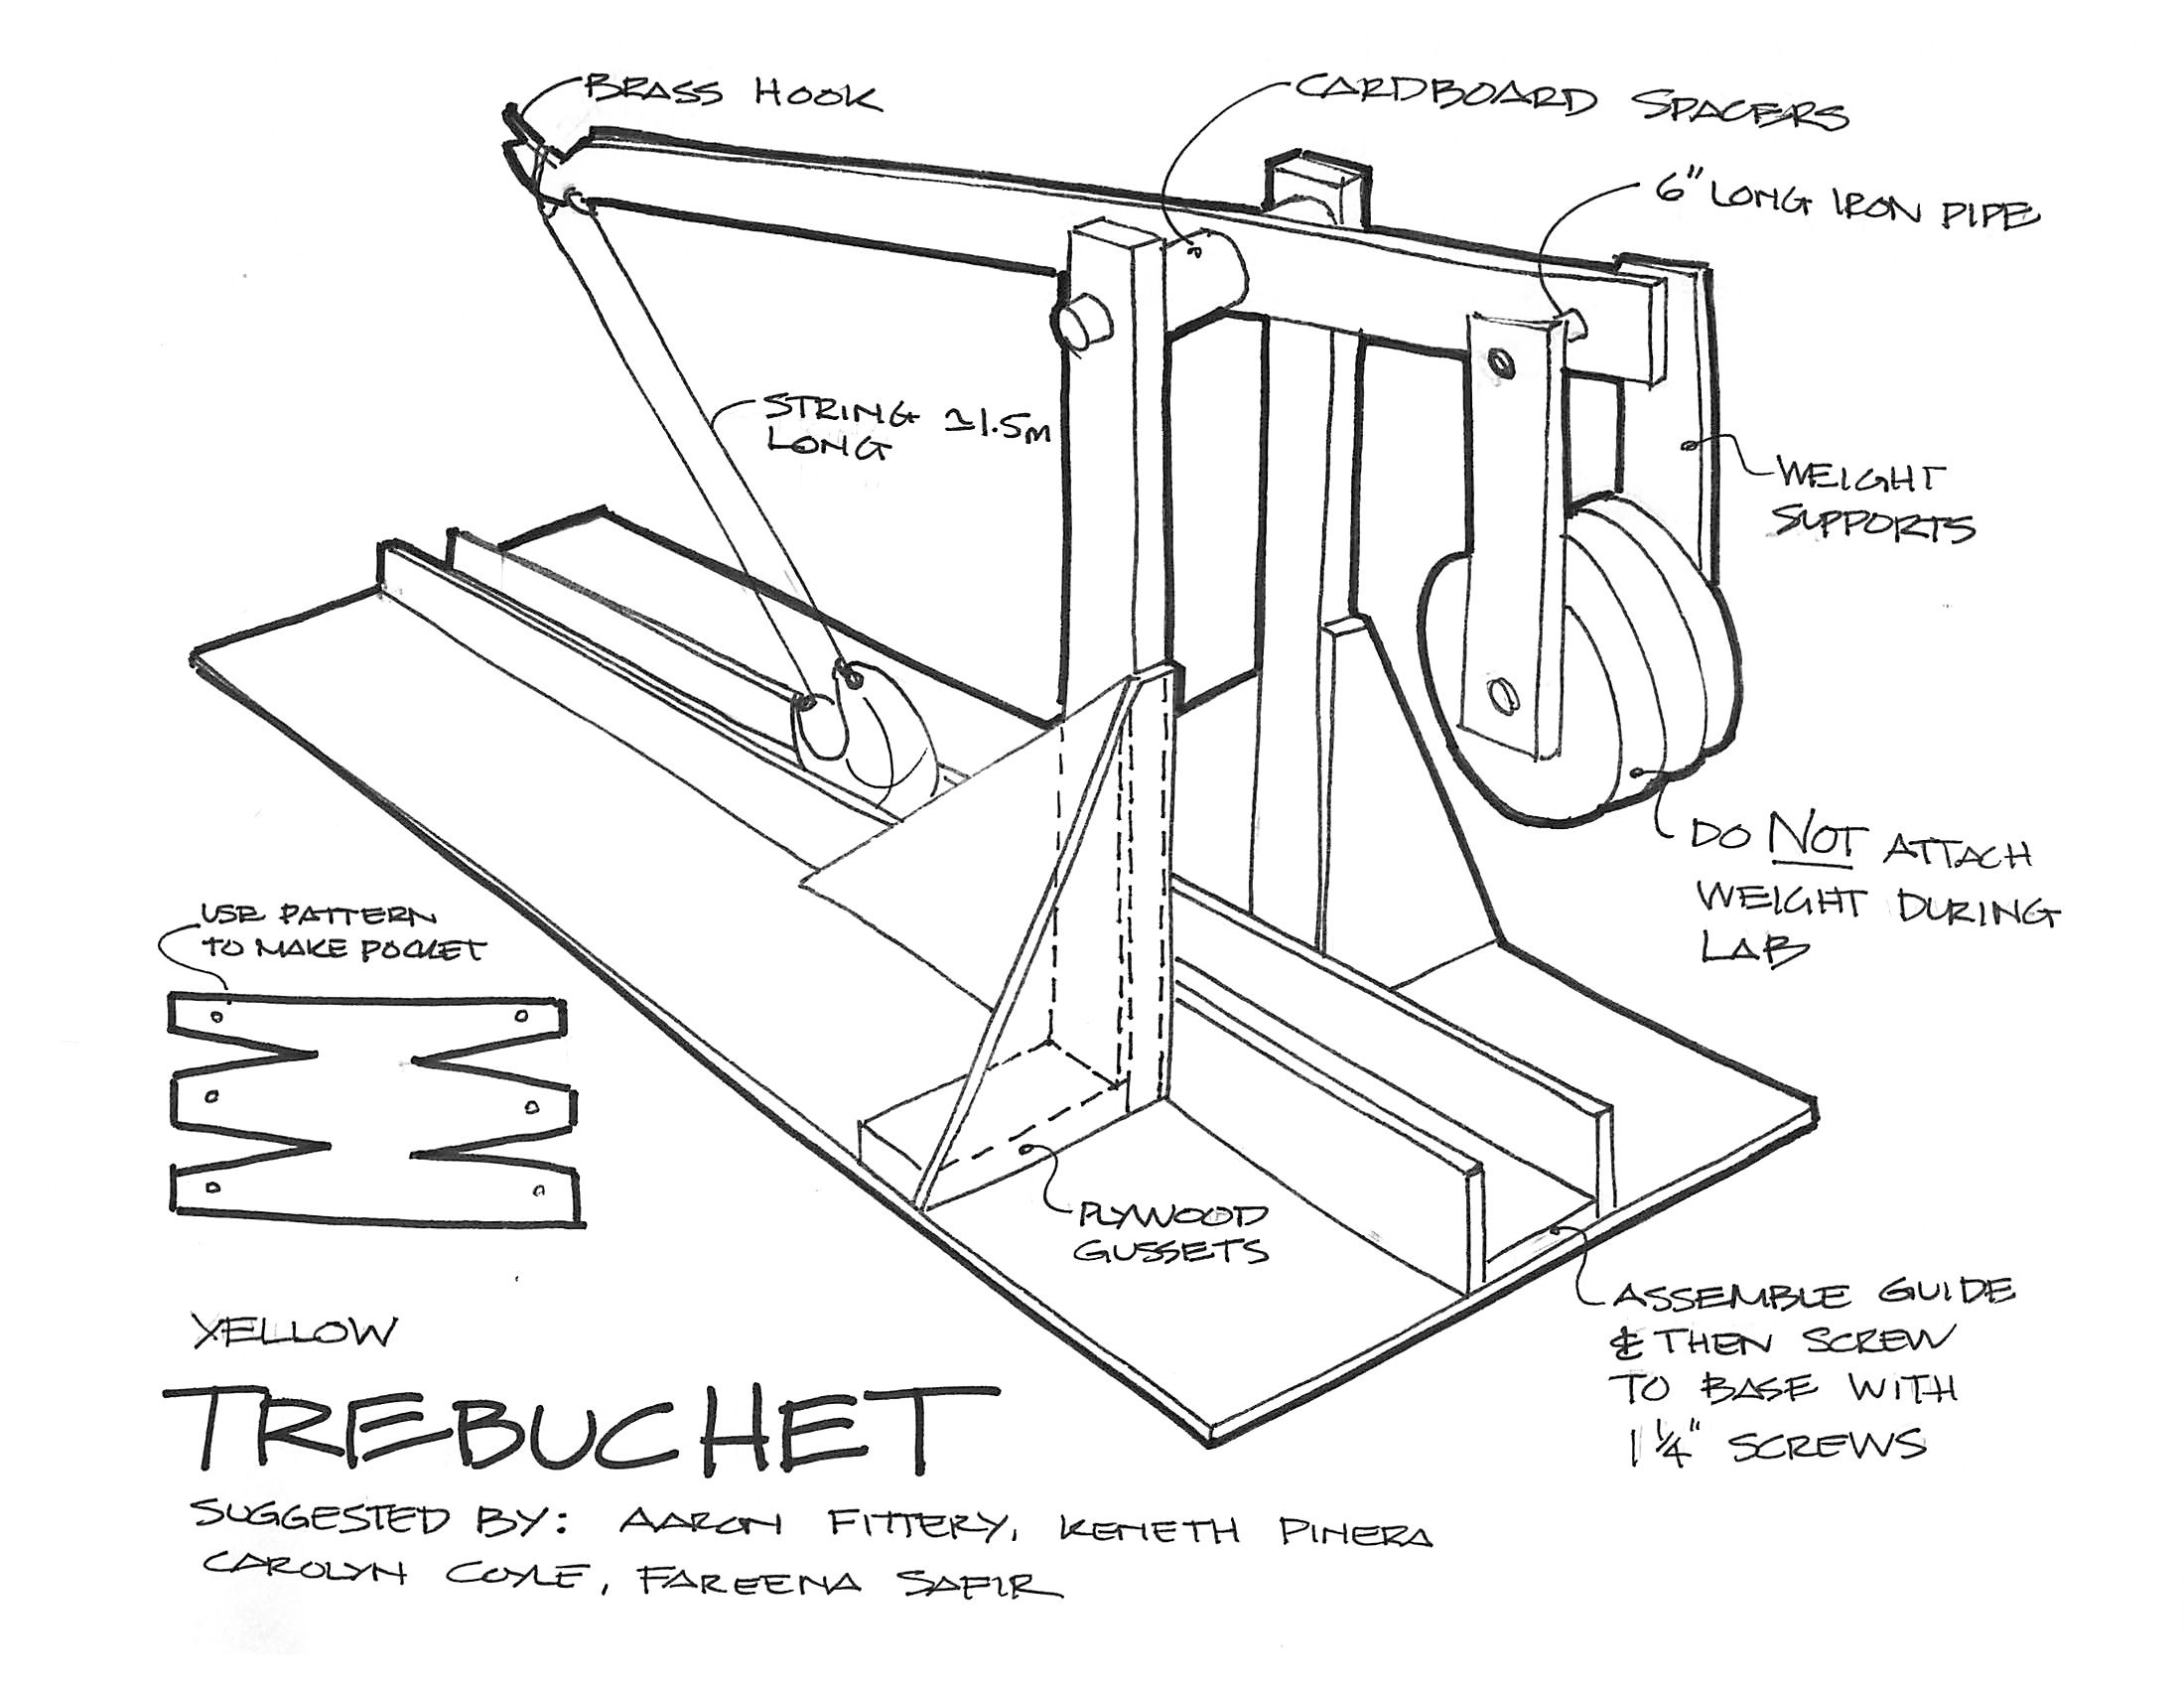 Trebuchet plans google search diy crafts pinterest search for Catapult design plans for physics